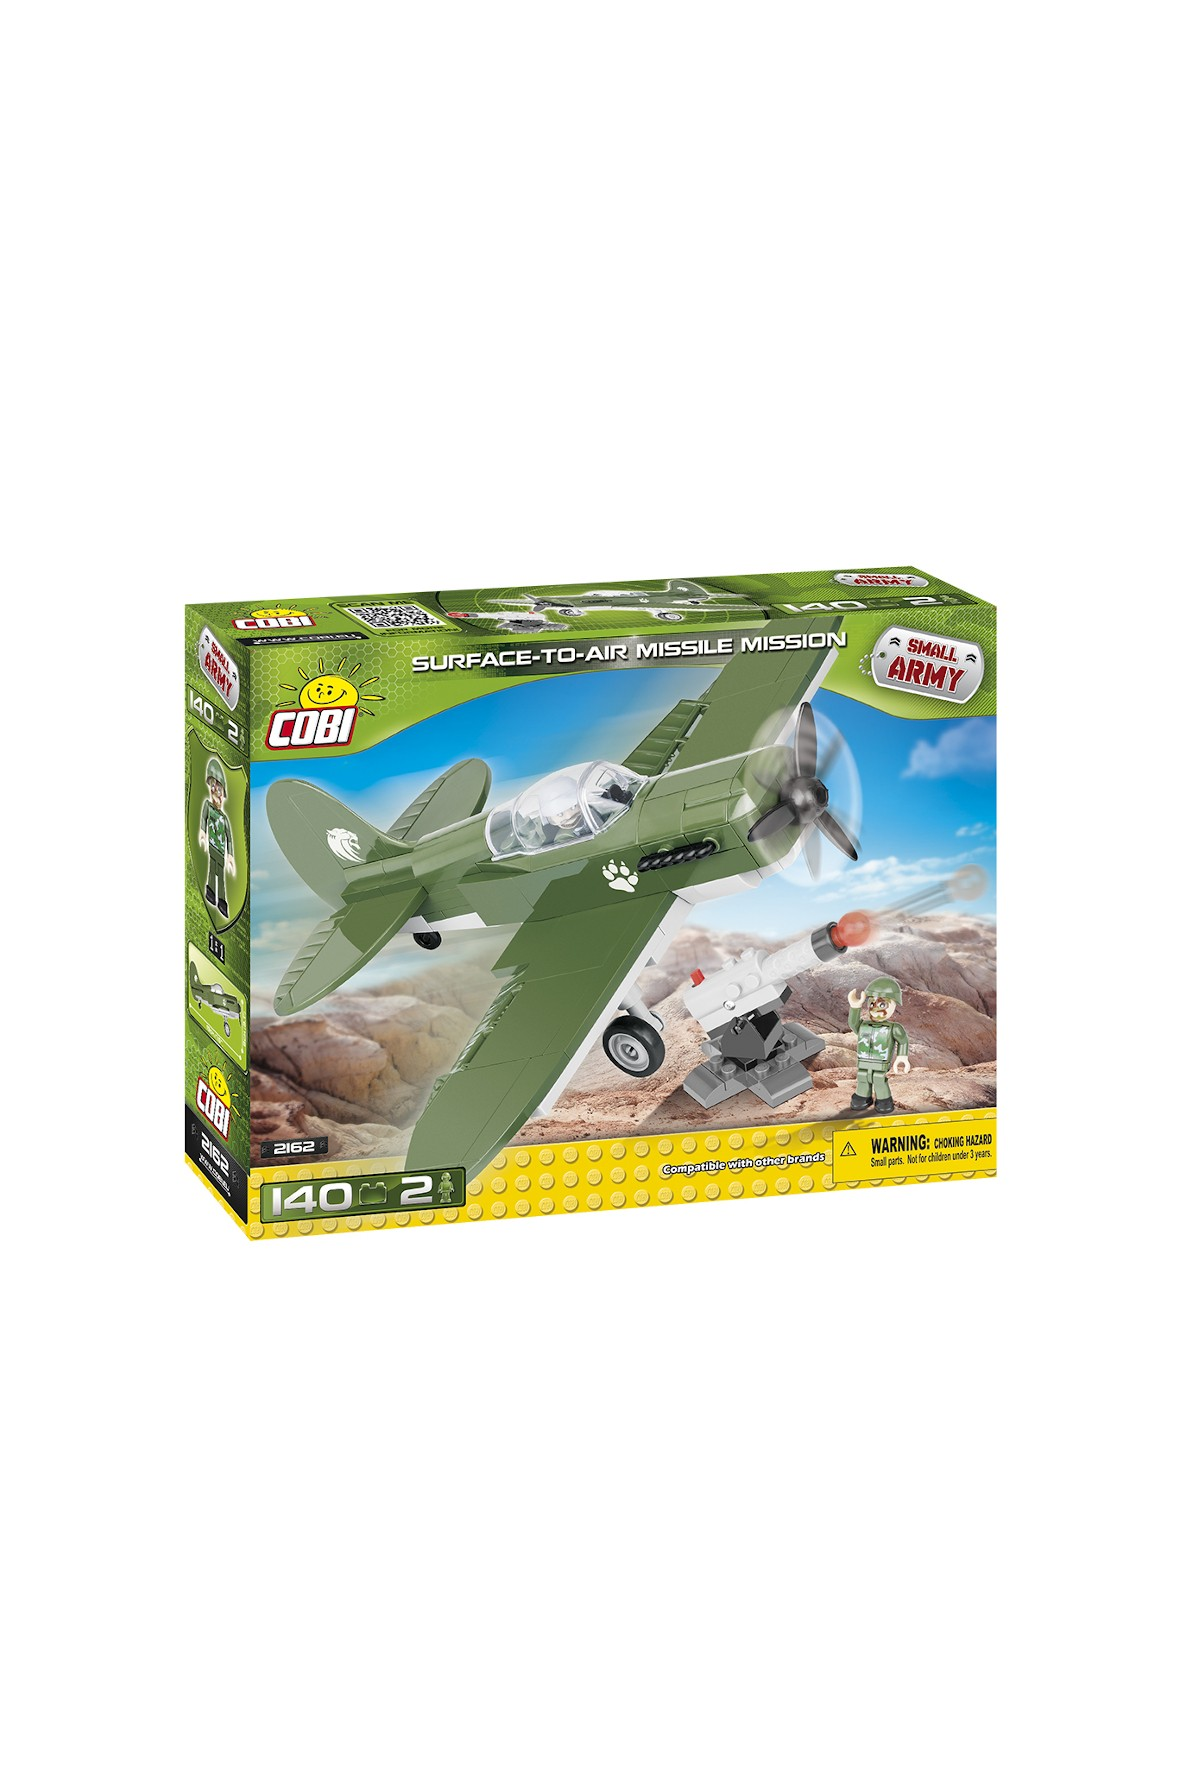 Klocki COBI Small Army Surface to Air missile mission 140el